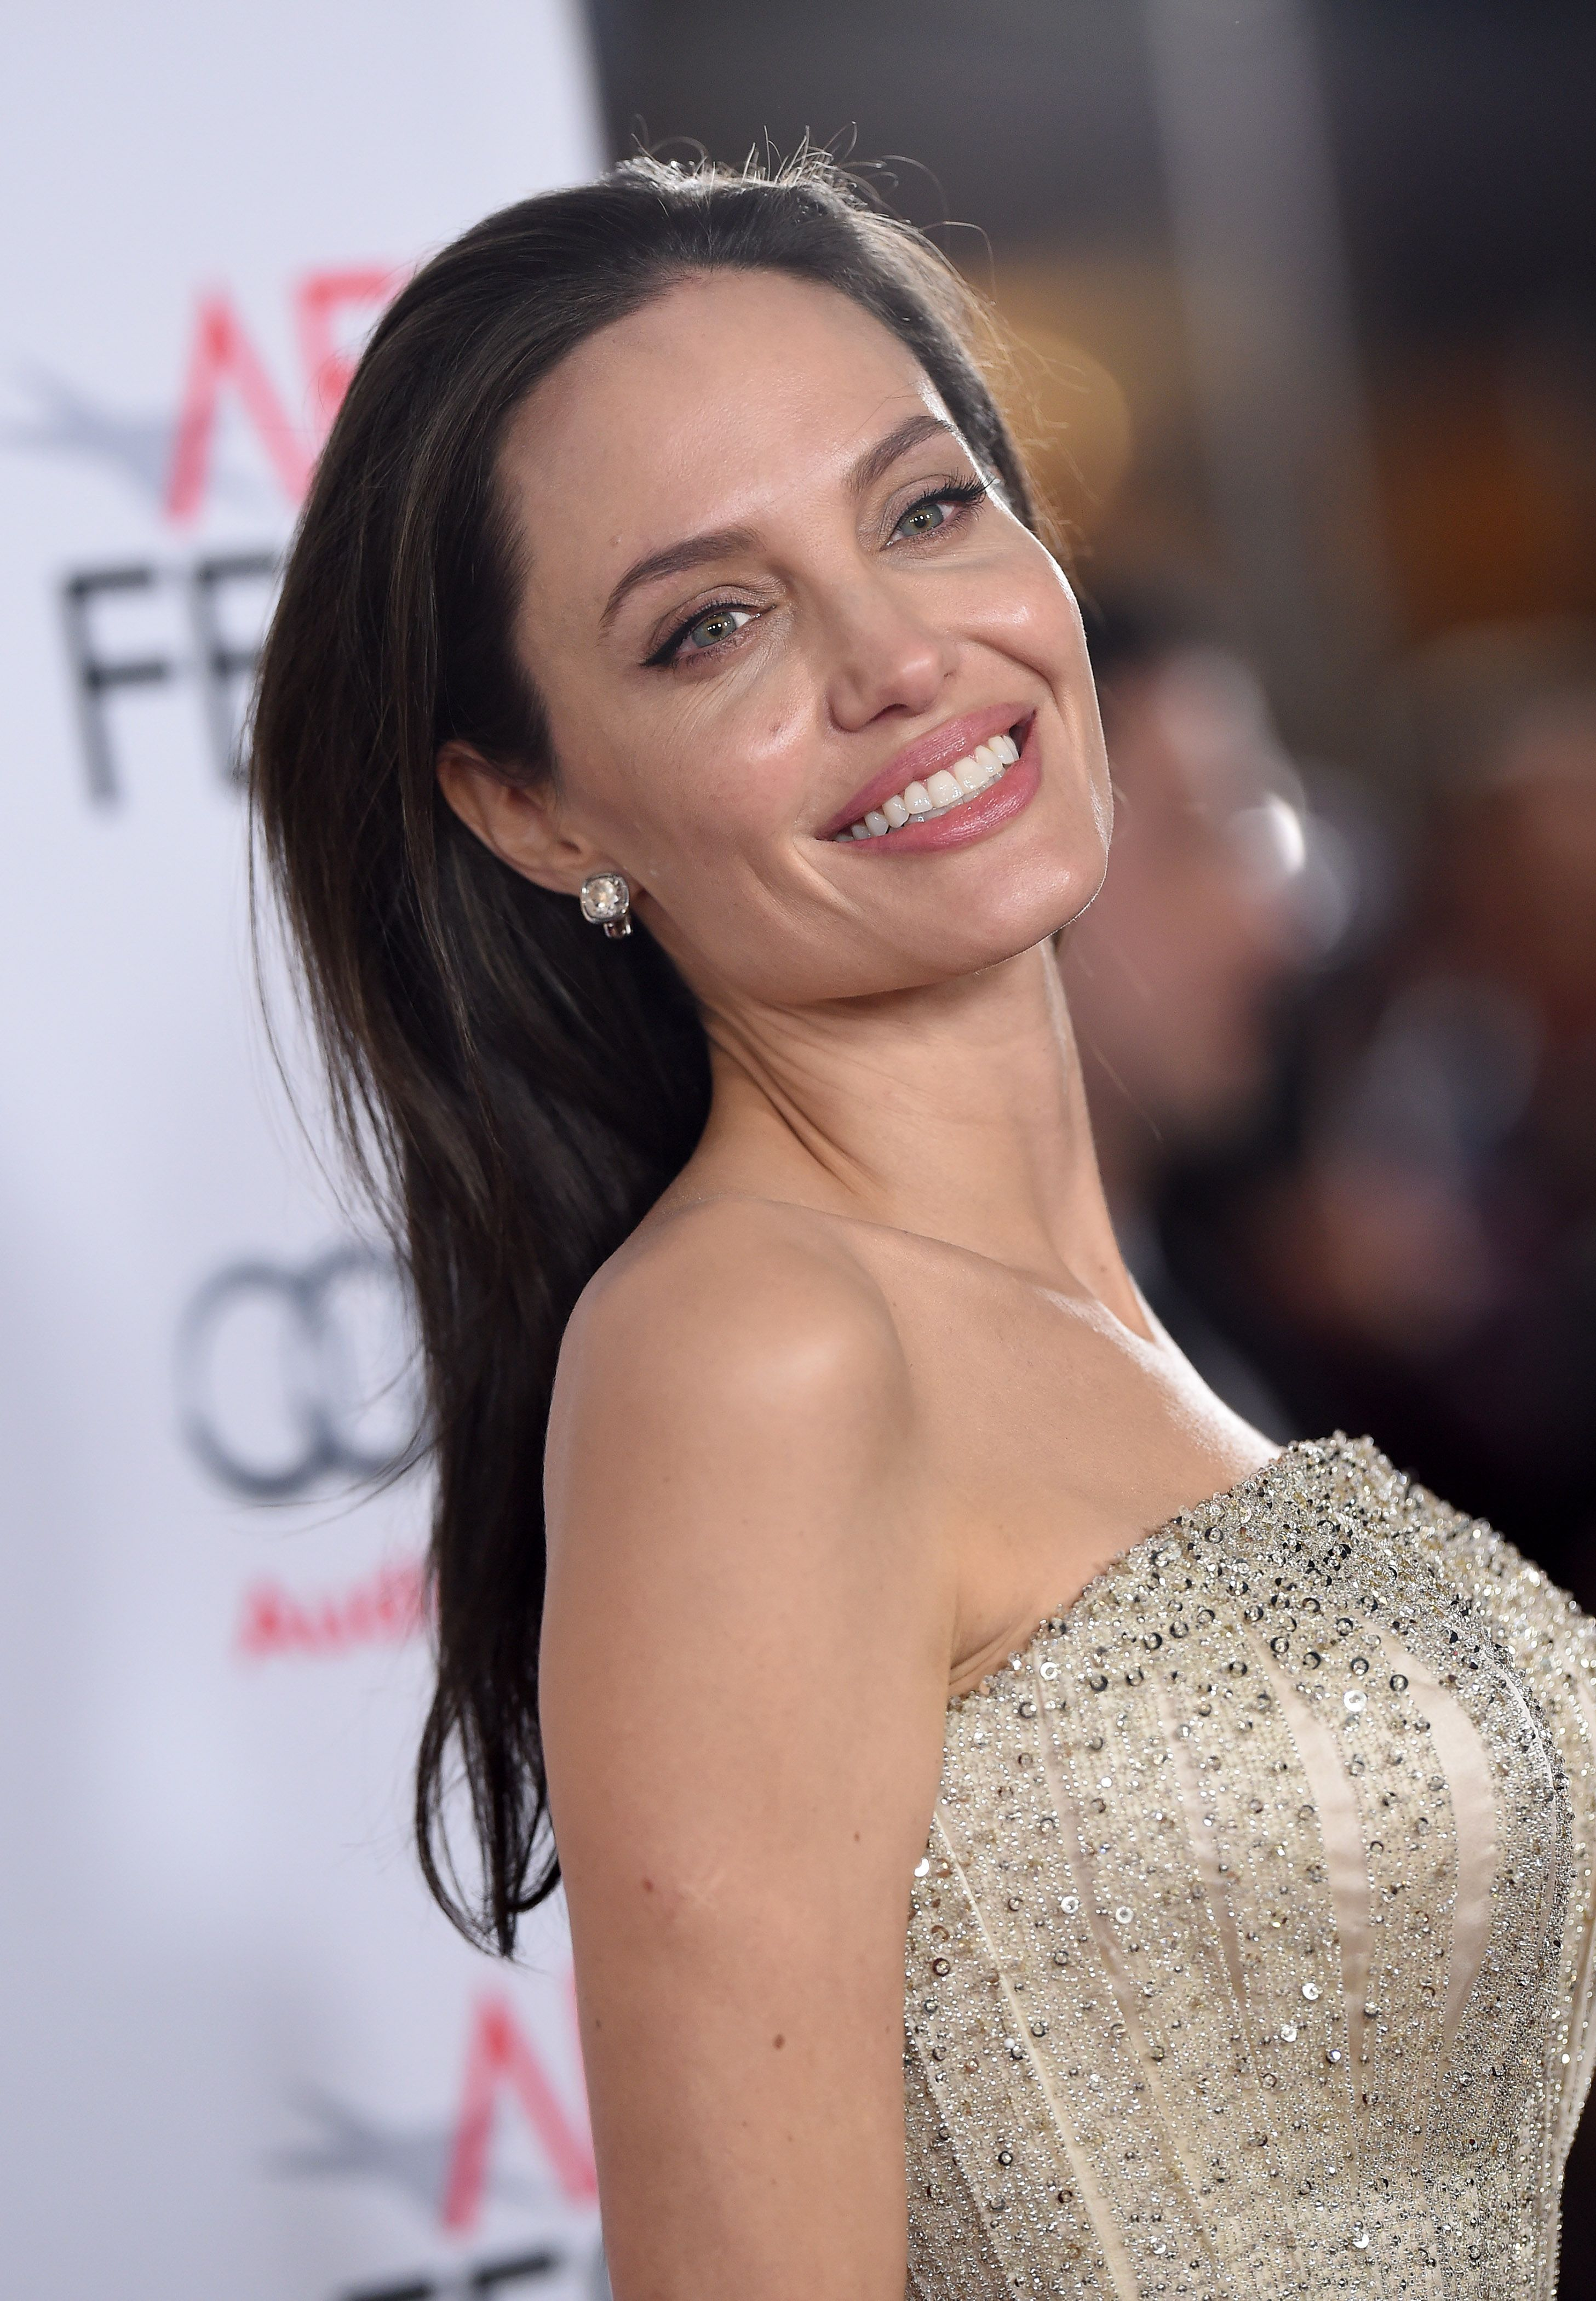 Forum on this topic: Delilah Parillo, angelina-jolie-young/